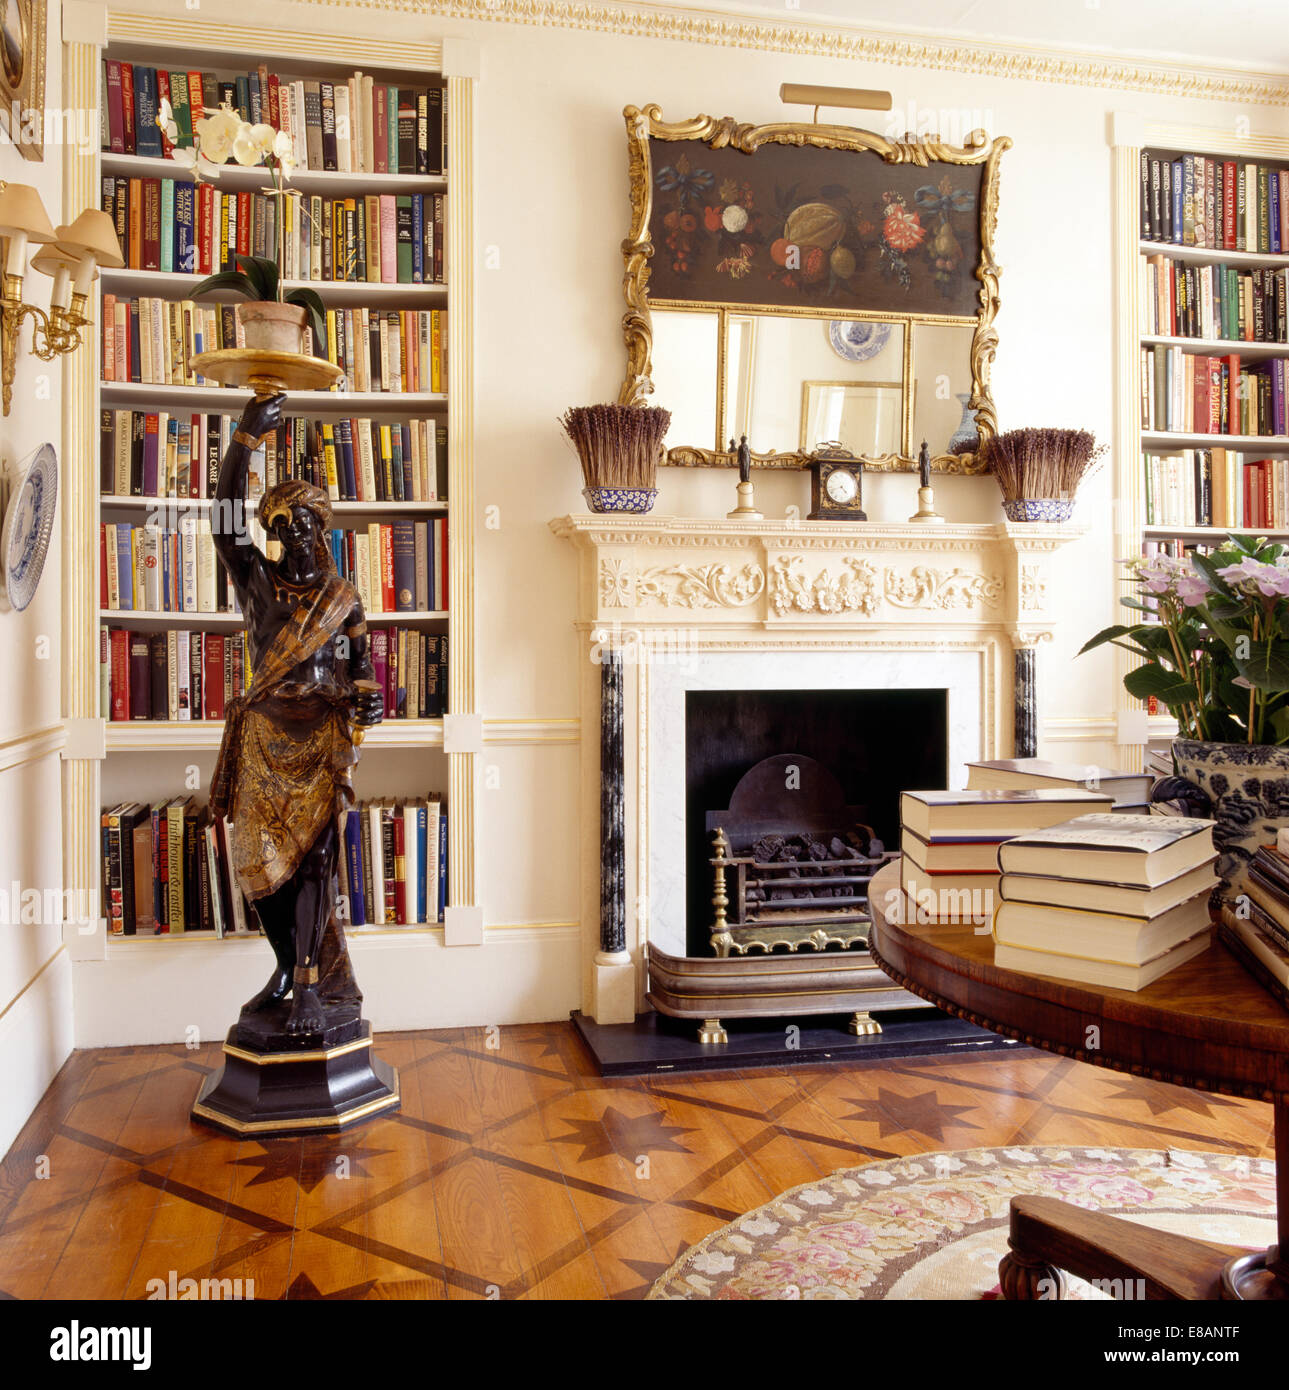 Blackamoor statue in living room with alcove bookshelves on either ...